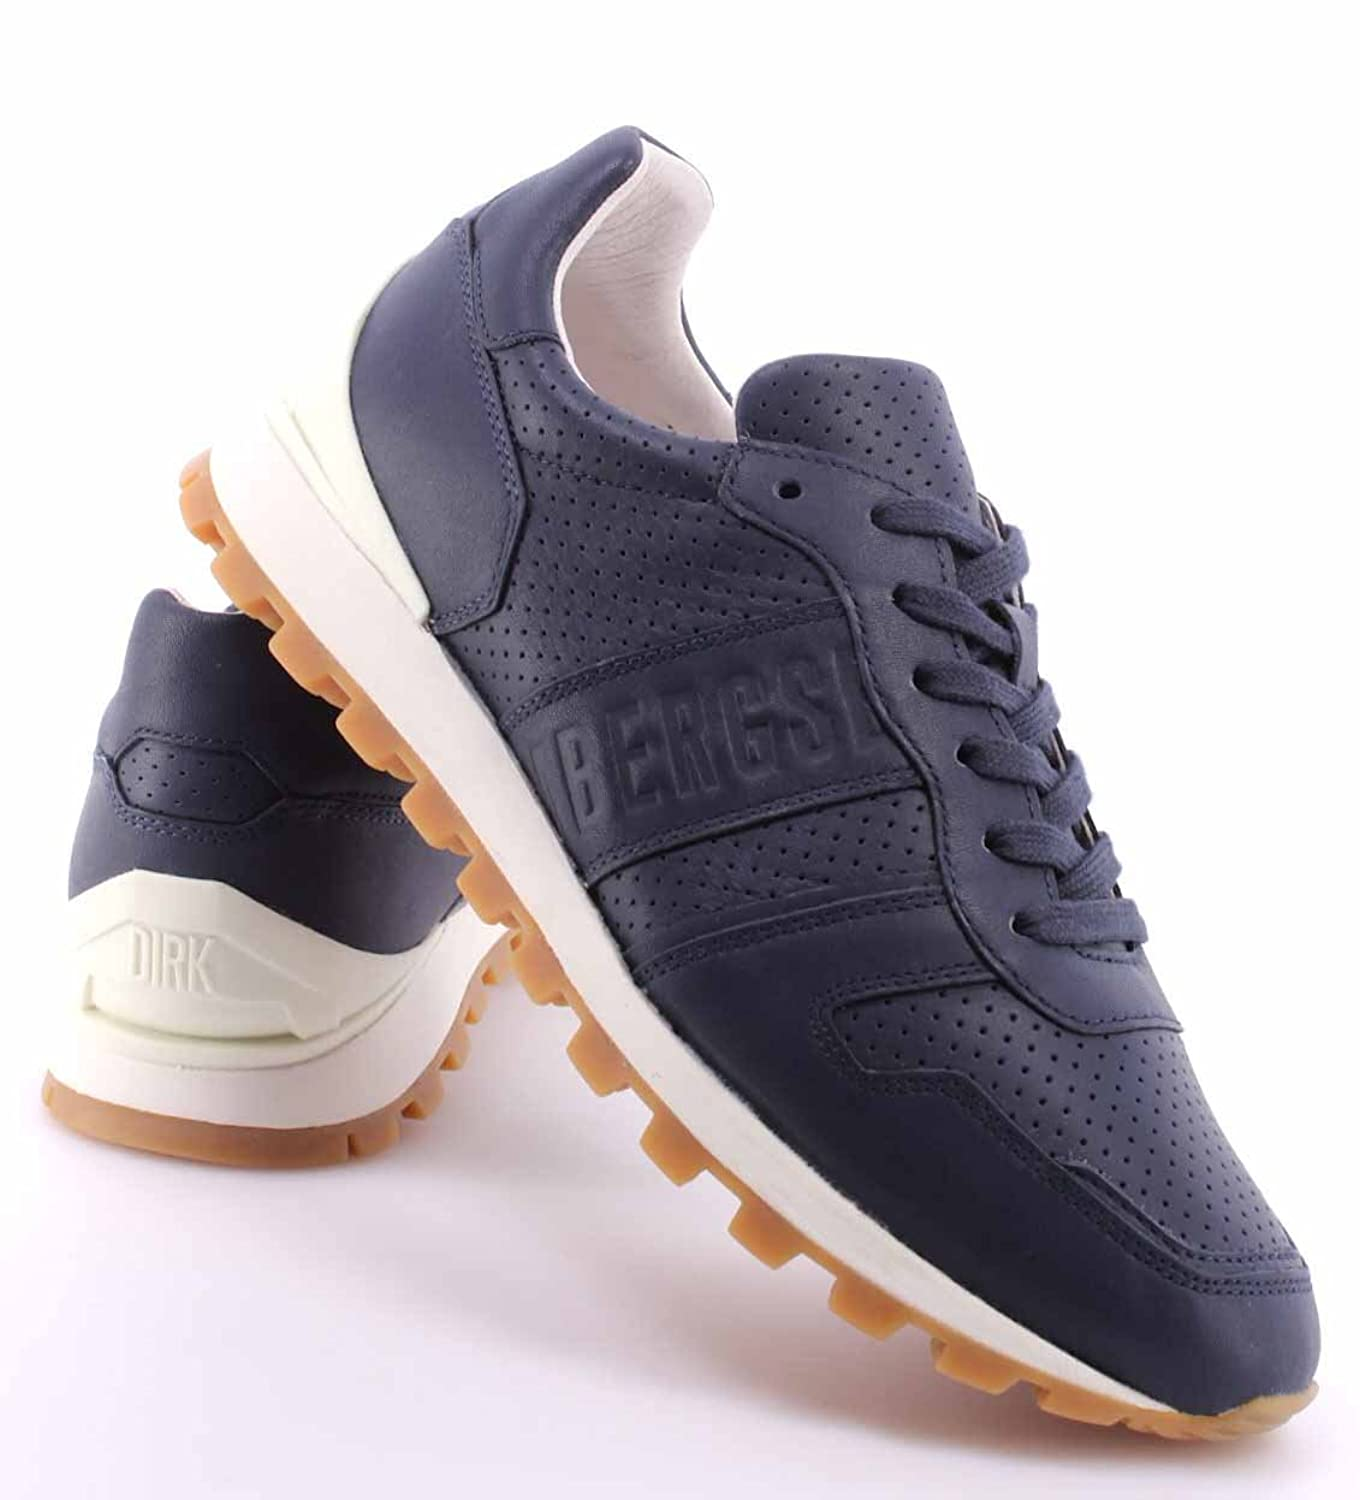 Zapatos Hombres Sneakers BIKKEMBERGS BKE108742 Numb Leather Blue Piel Azul Nuevo nAR7XAW